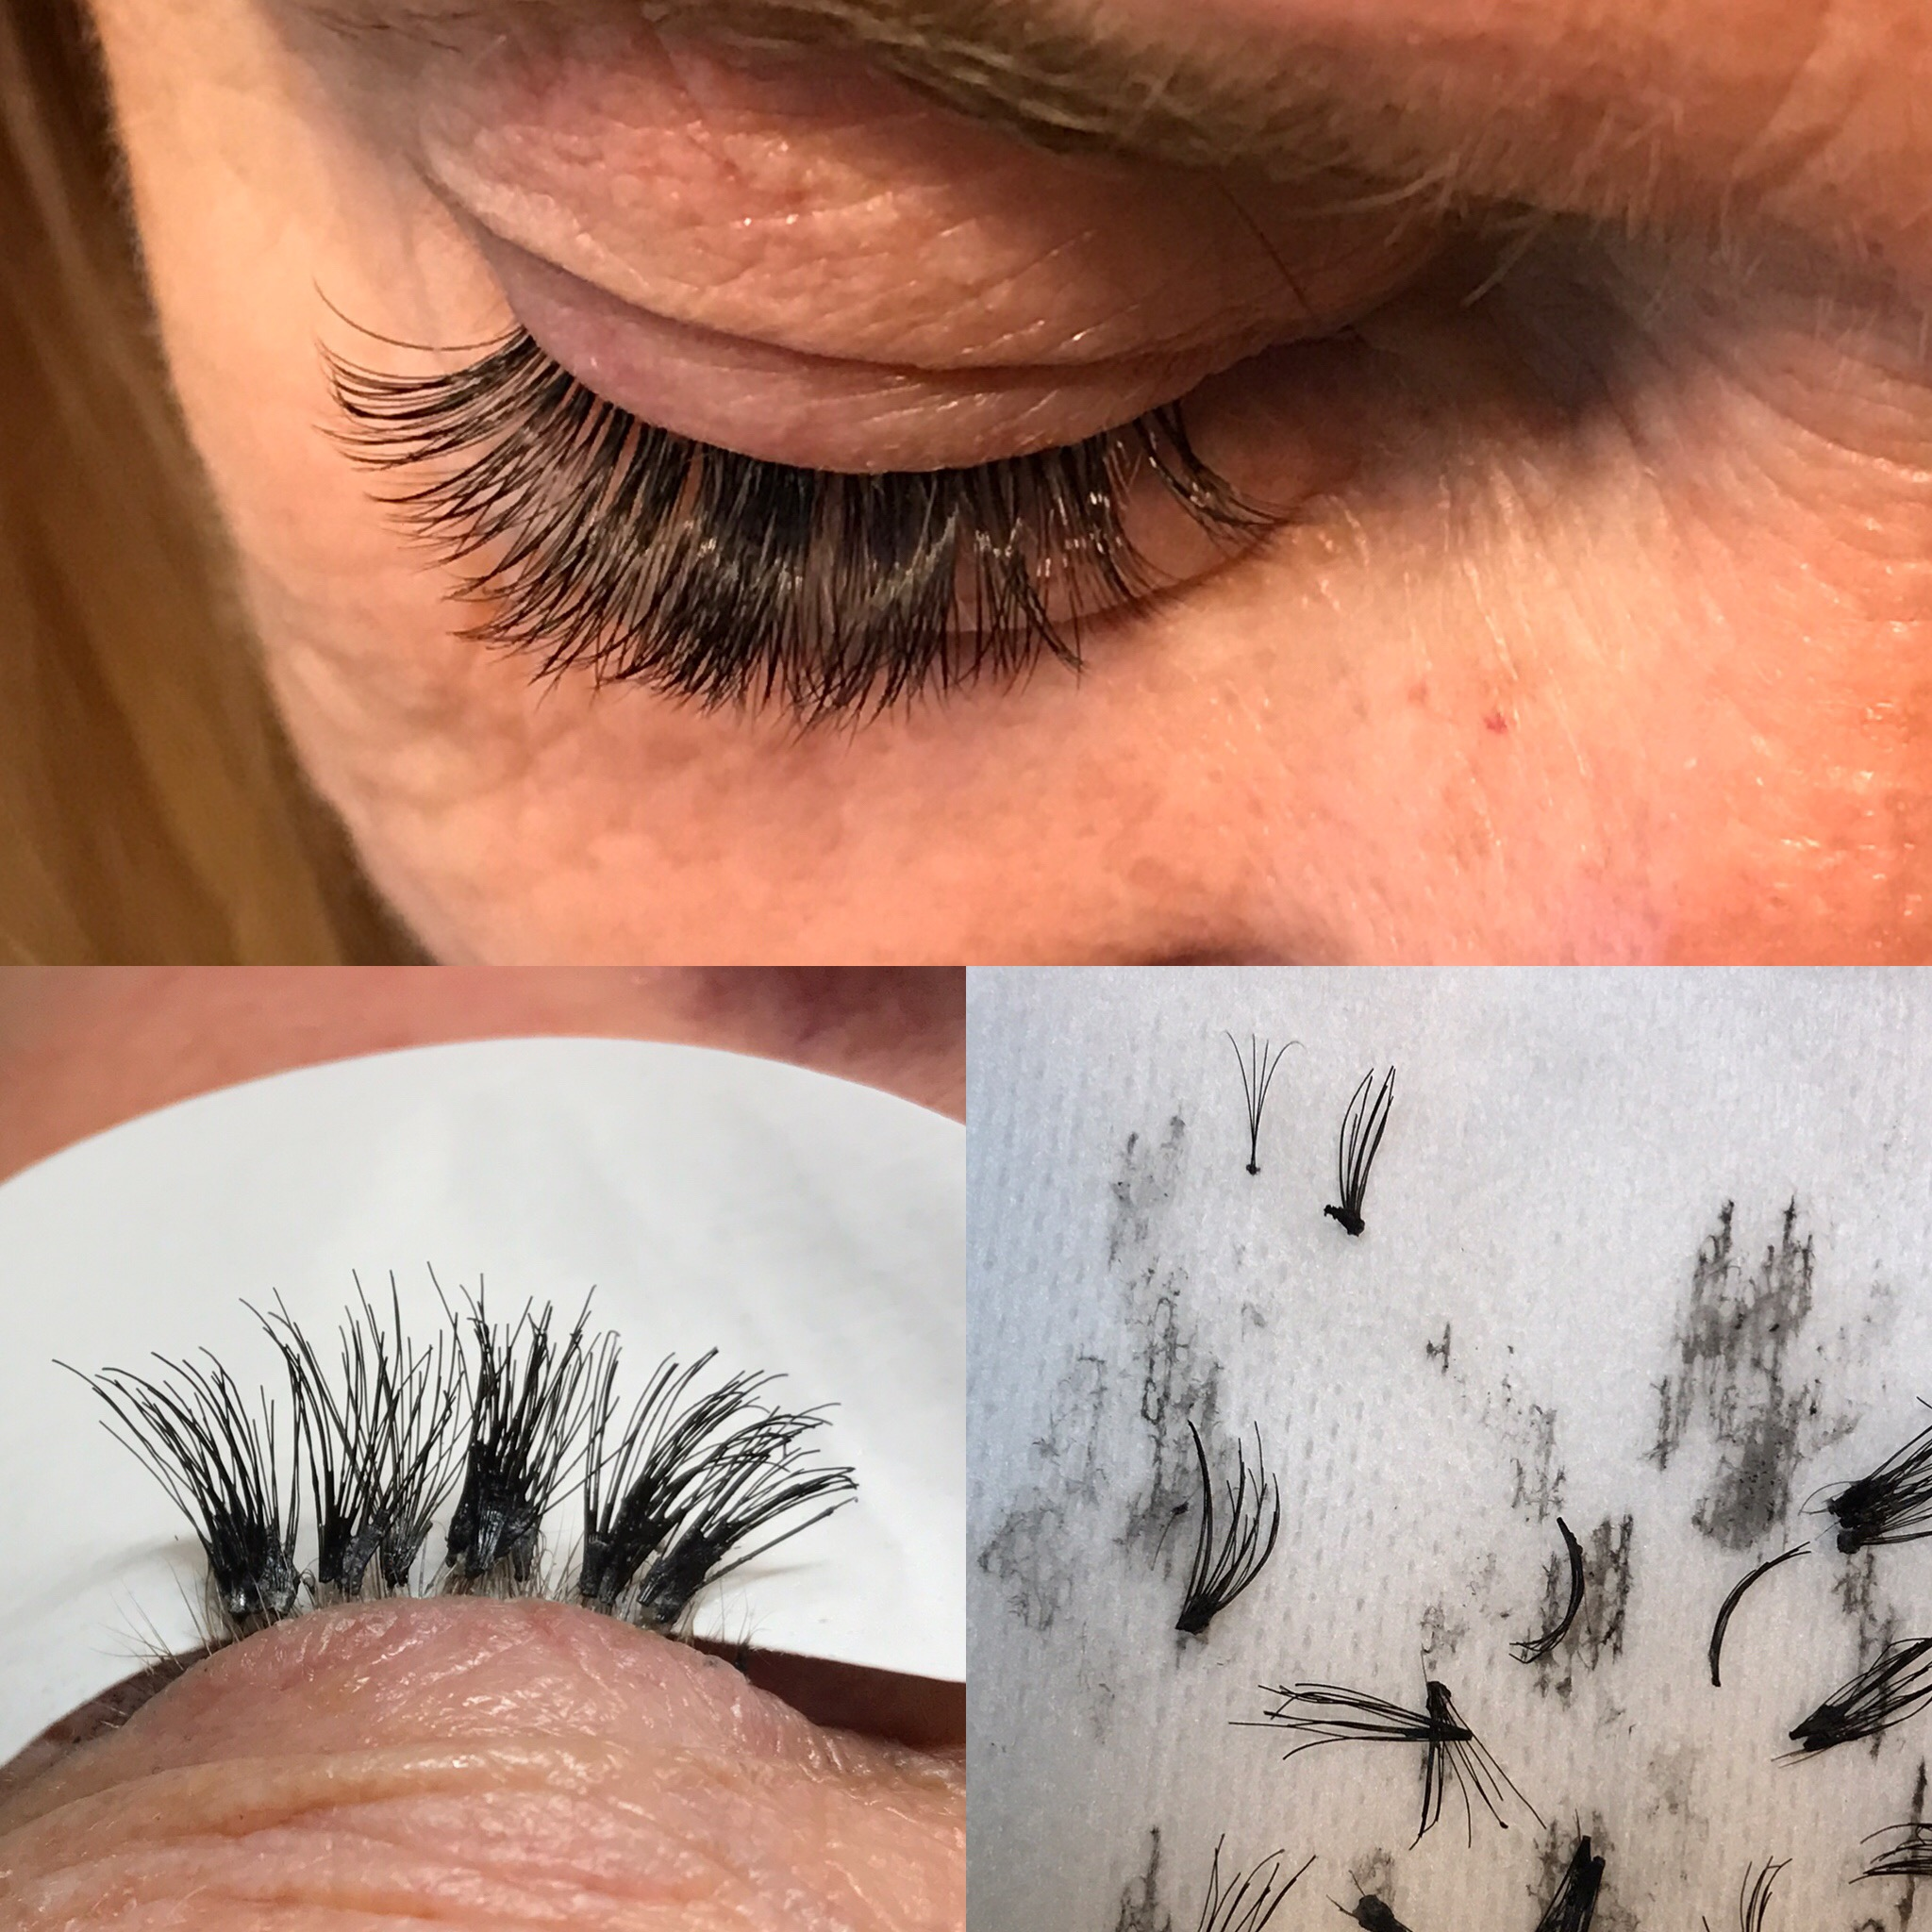 The Difference Between Cluster Lashes And Volume Lashes Nichole